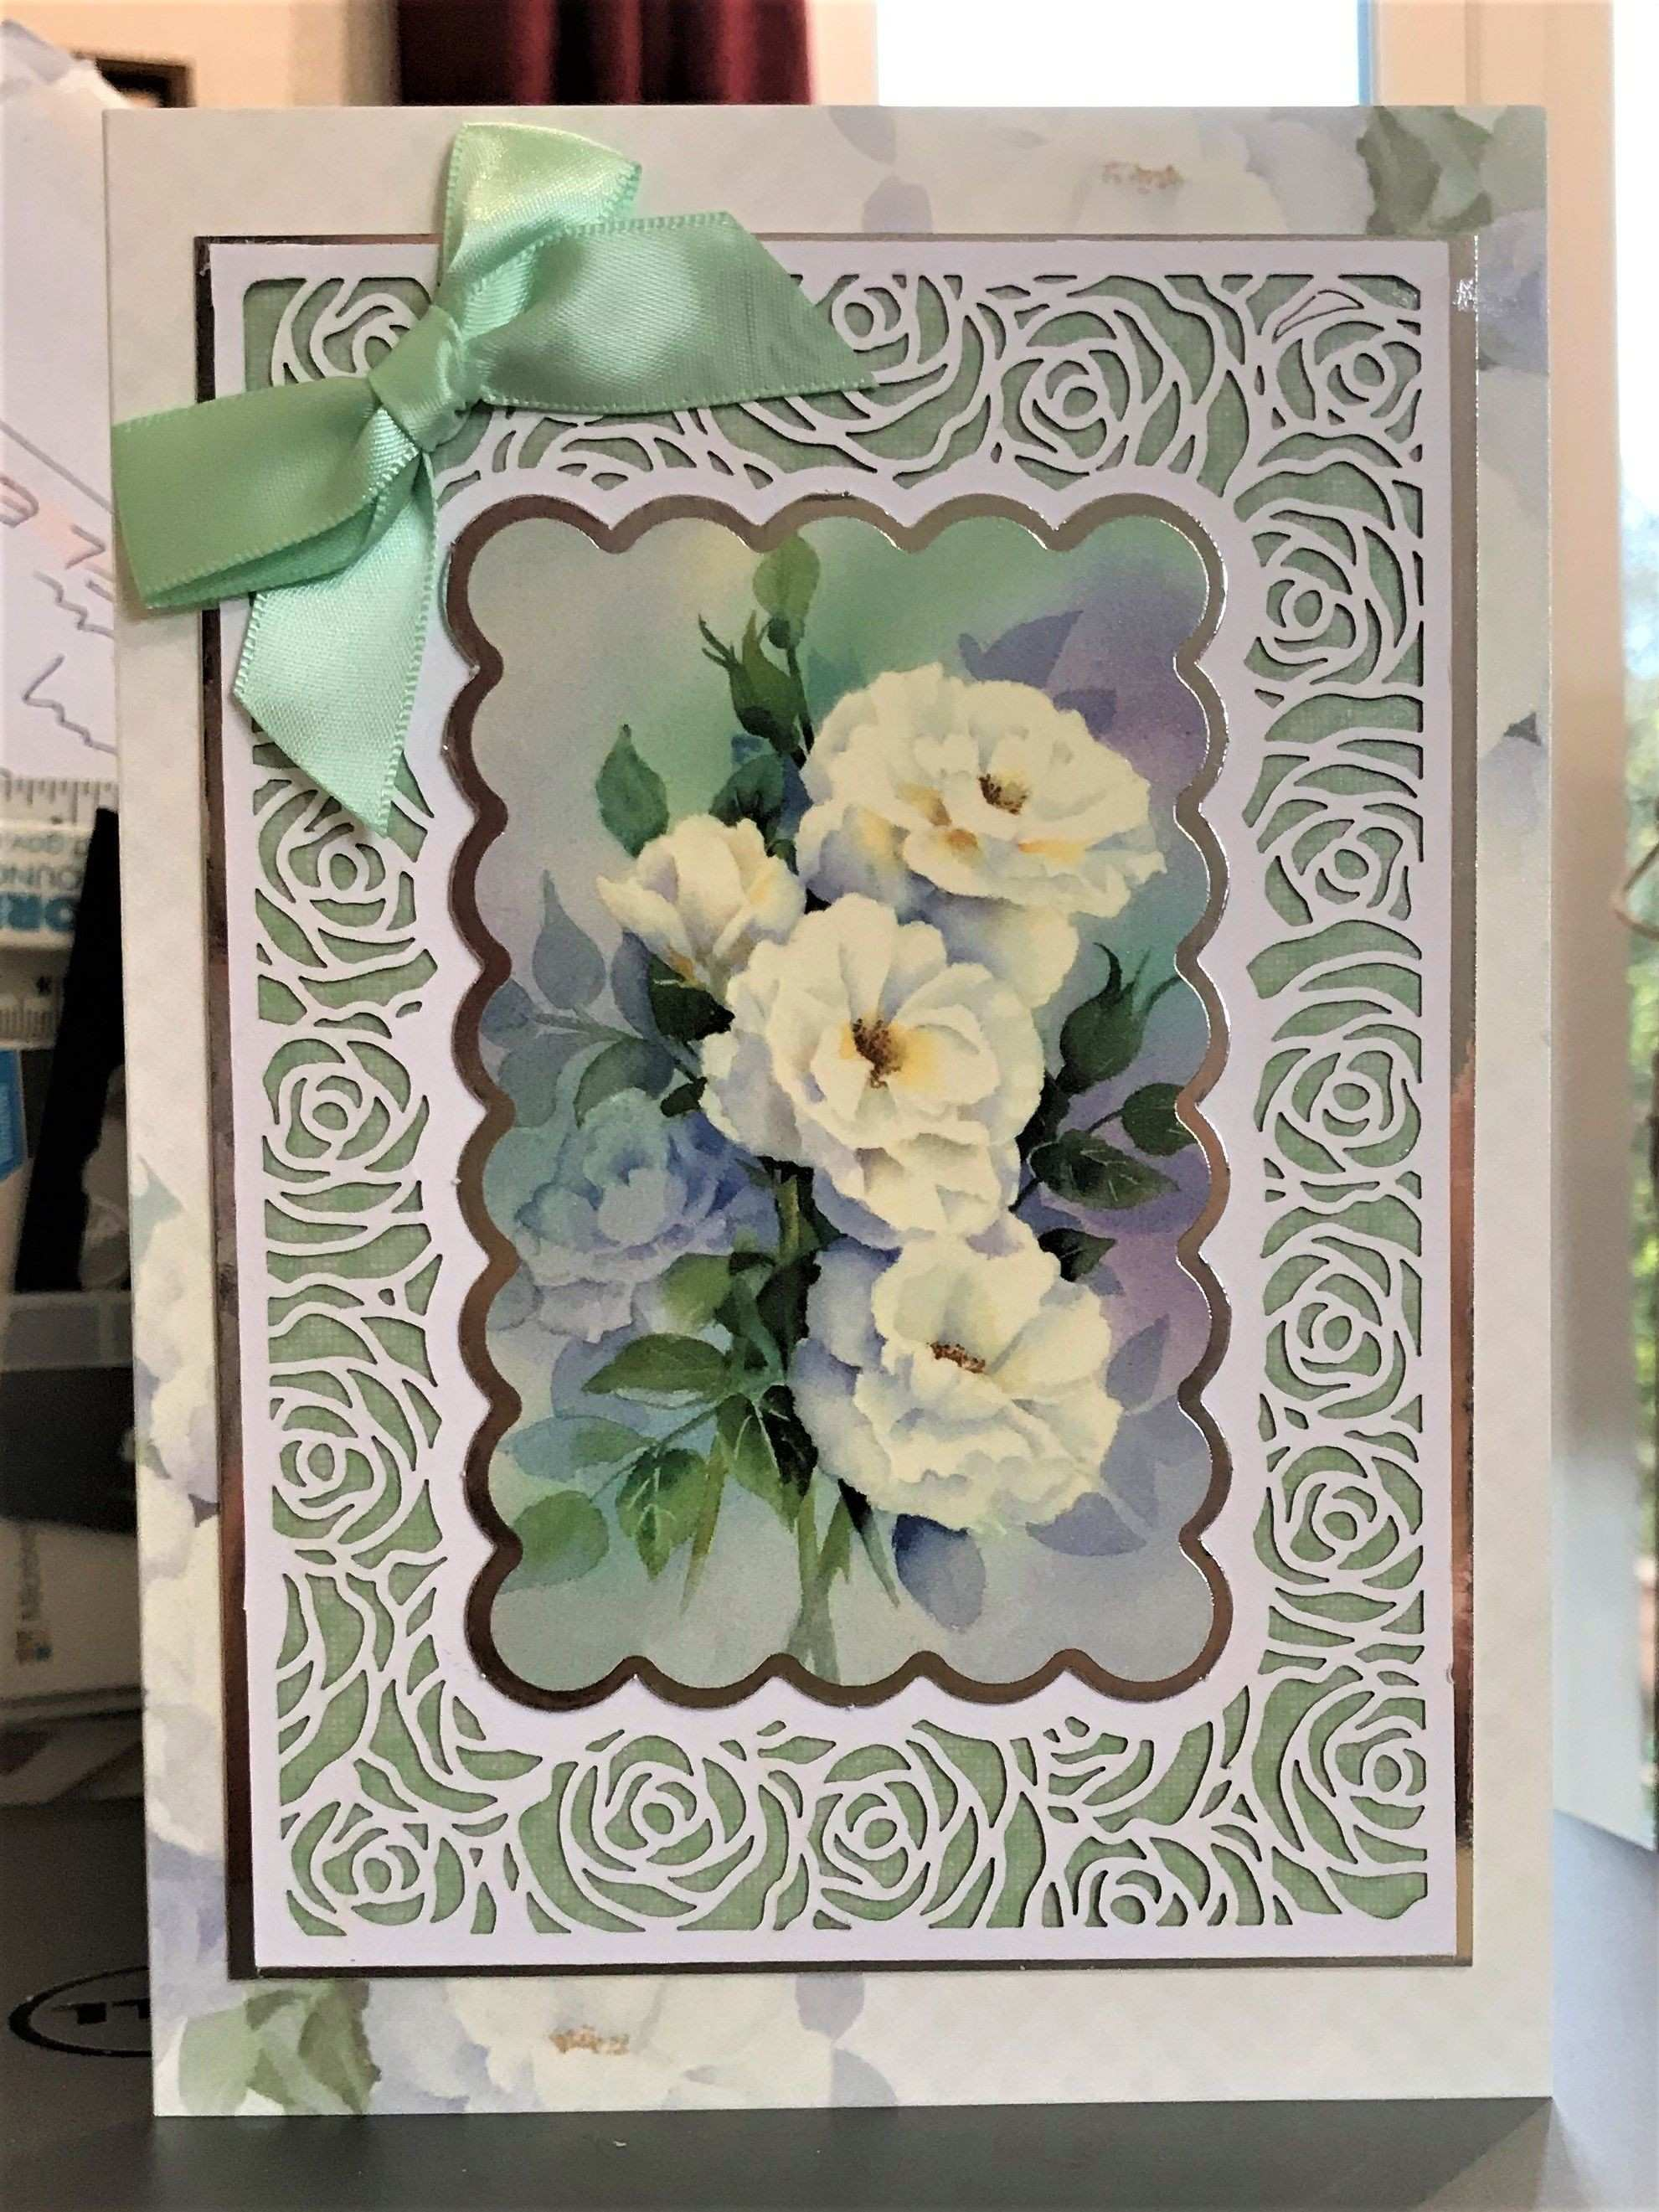 11 Greeting Card 5x7 Hunkydory Filigree Frames